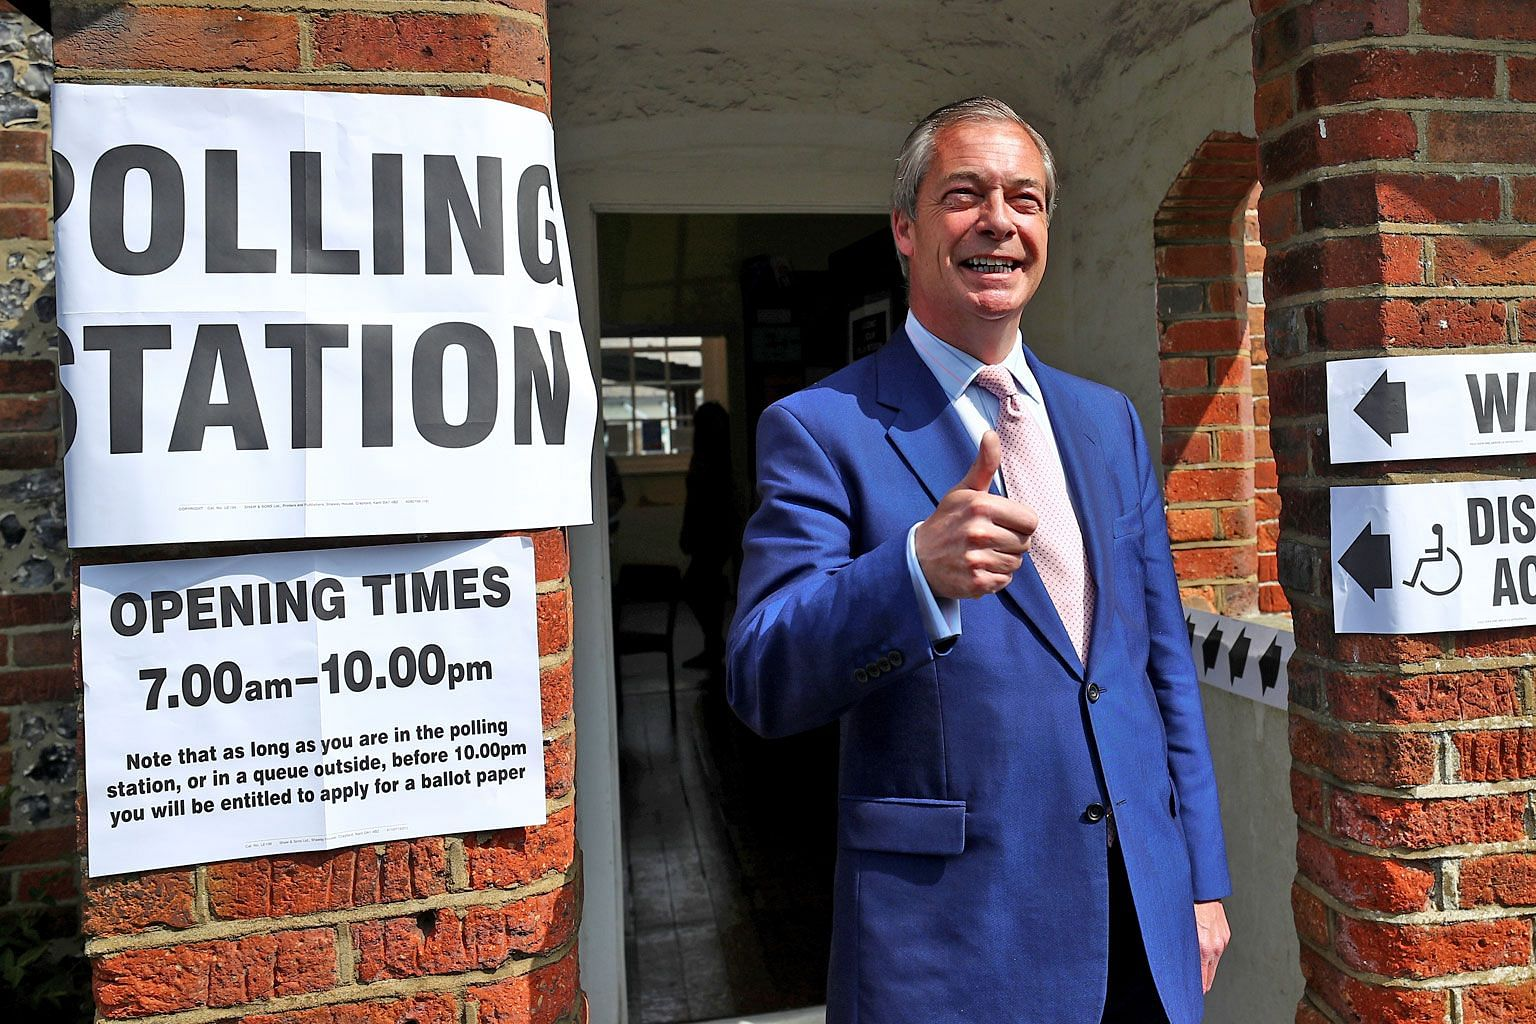 Brexit Party leader Nigel Farage at a polling station in Britain yesterday as the country and the Netherlands kicked off four days of voting in the European Union elections. PHOTO: REUTERS